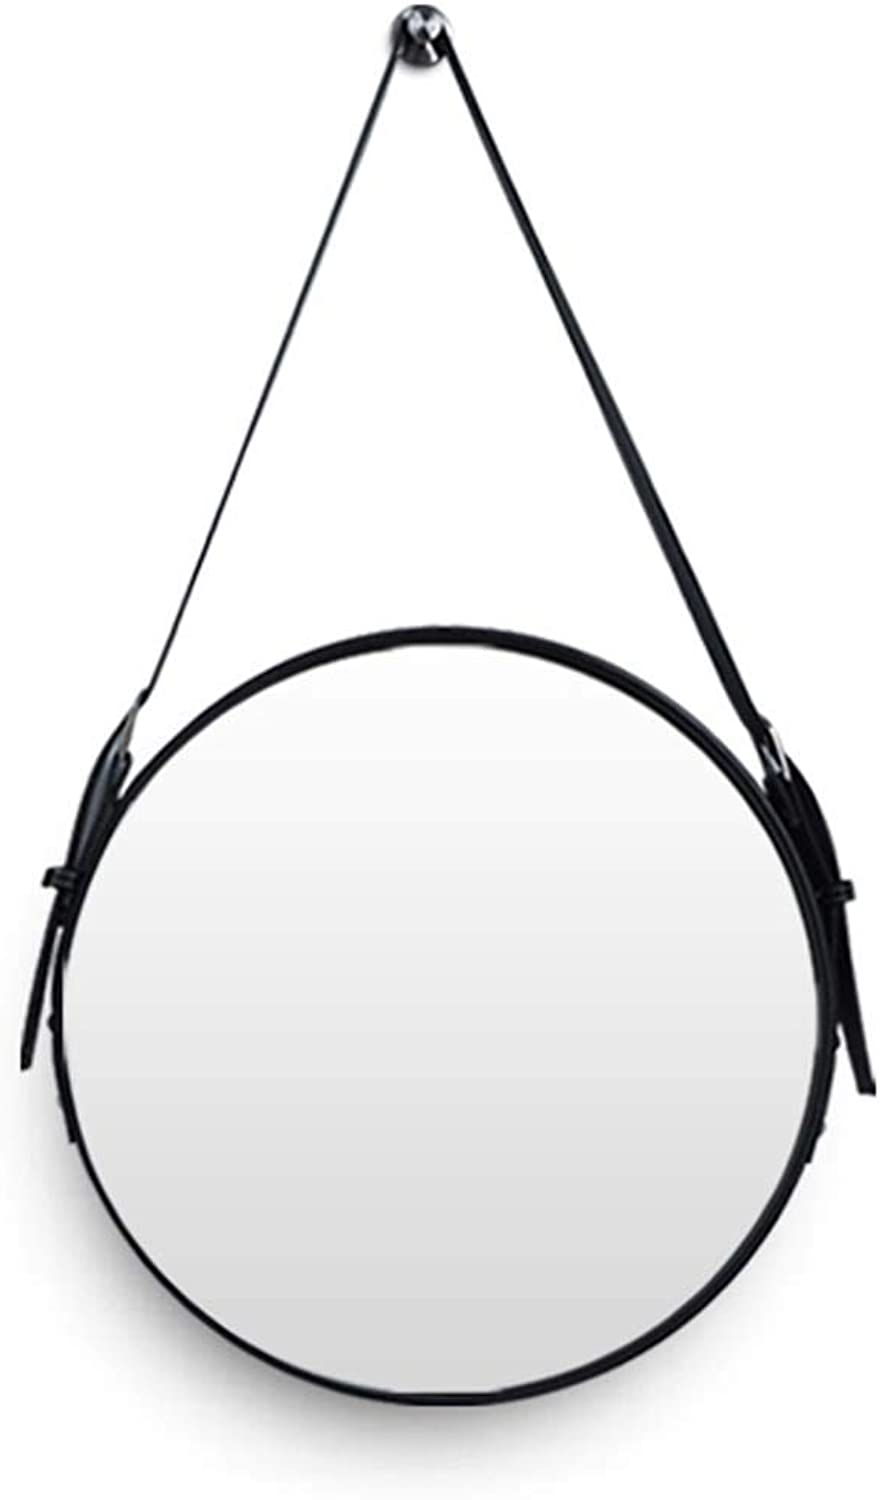 Vanity Mirrors Diameter 20-28Inch Leather Round Wall Mirror Decorative Makeup Mirror with Hanging Strap Silver Hardware Hook(Black)